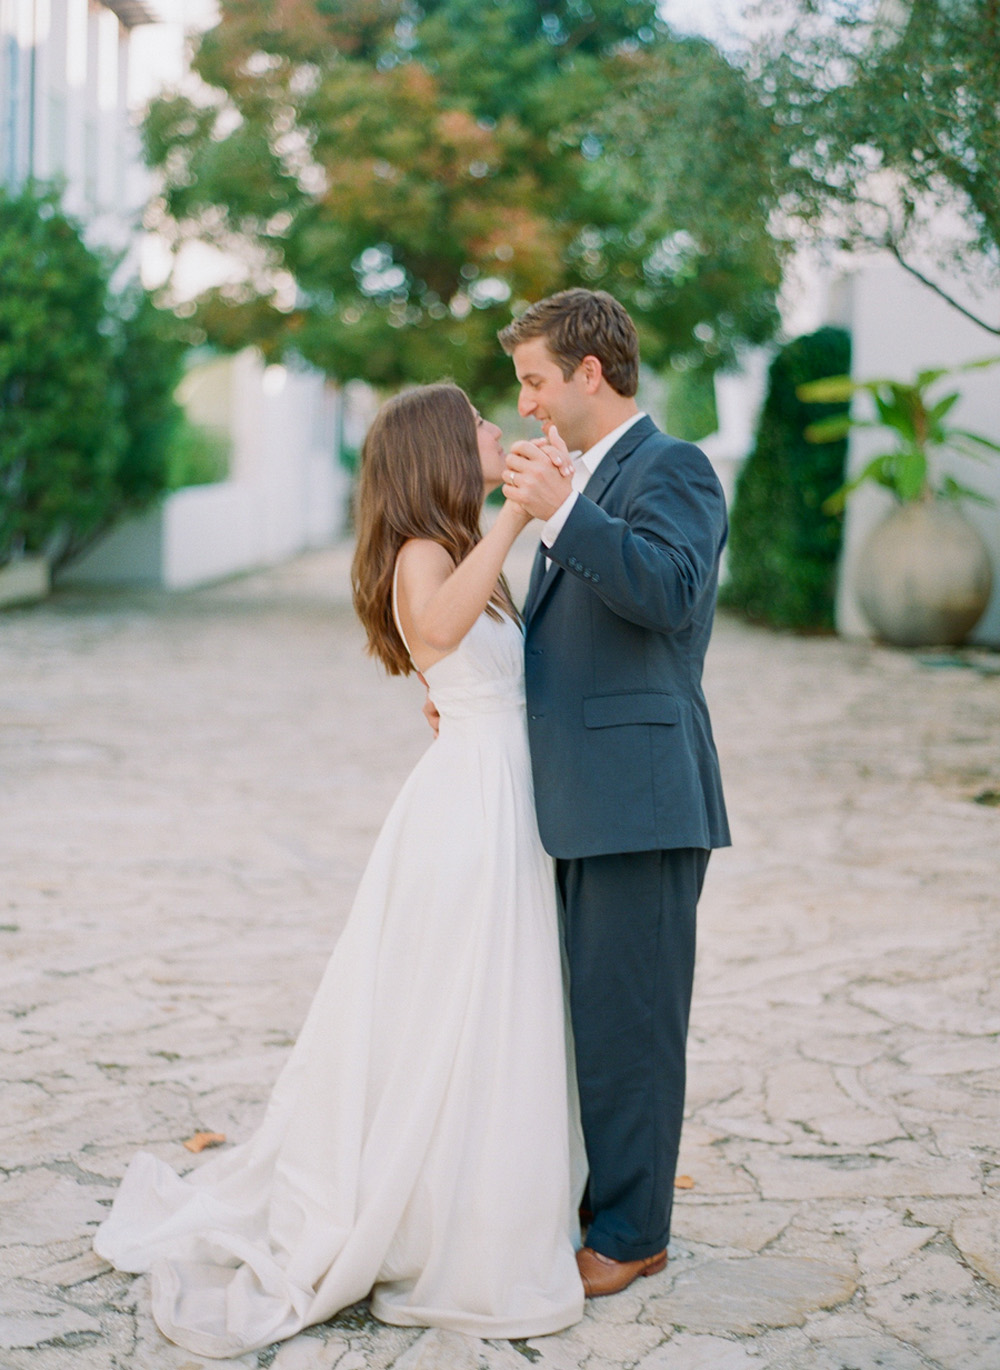 gulf_coast_ethereal_destination_wedding_photographer.jpg